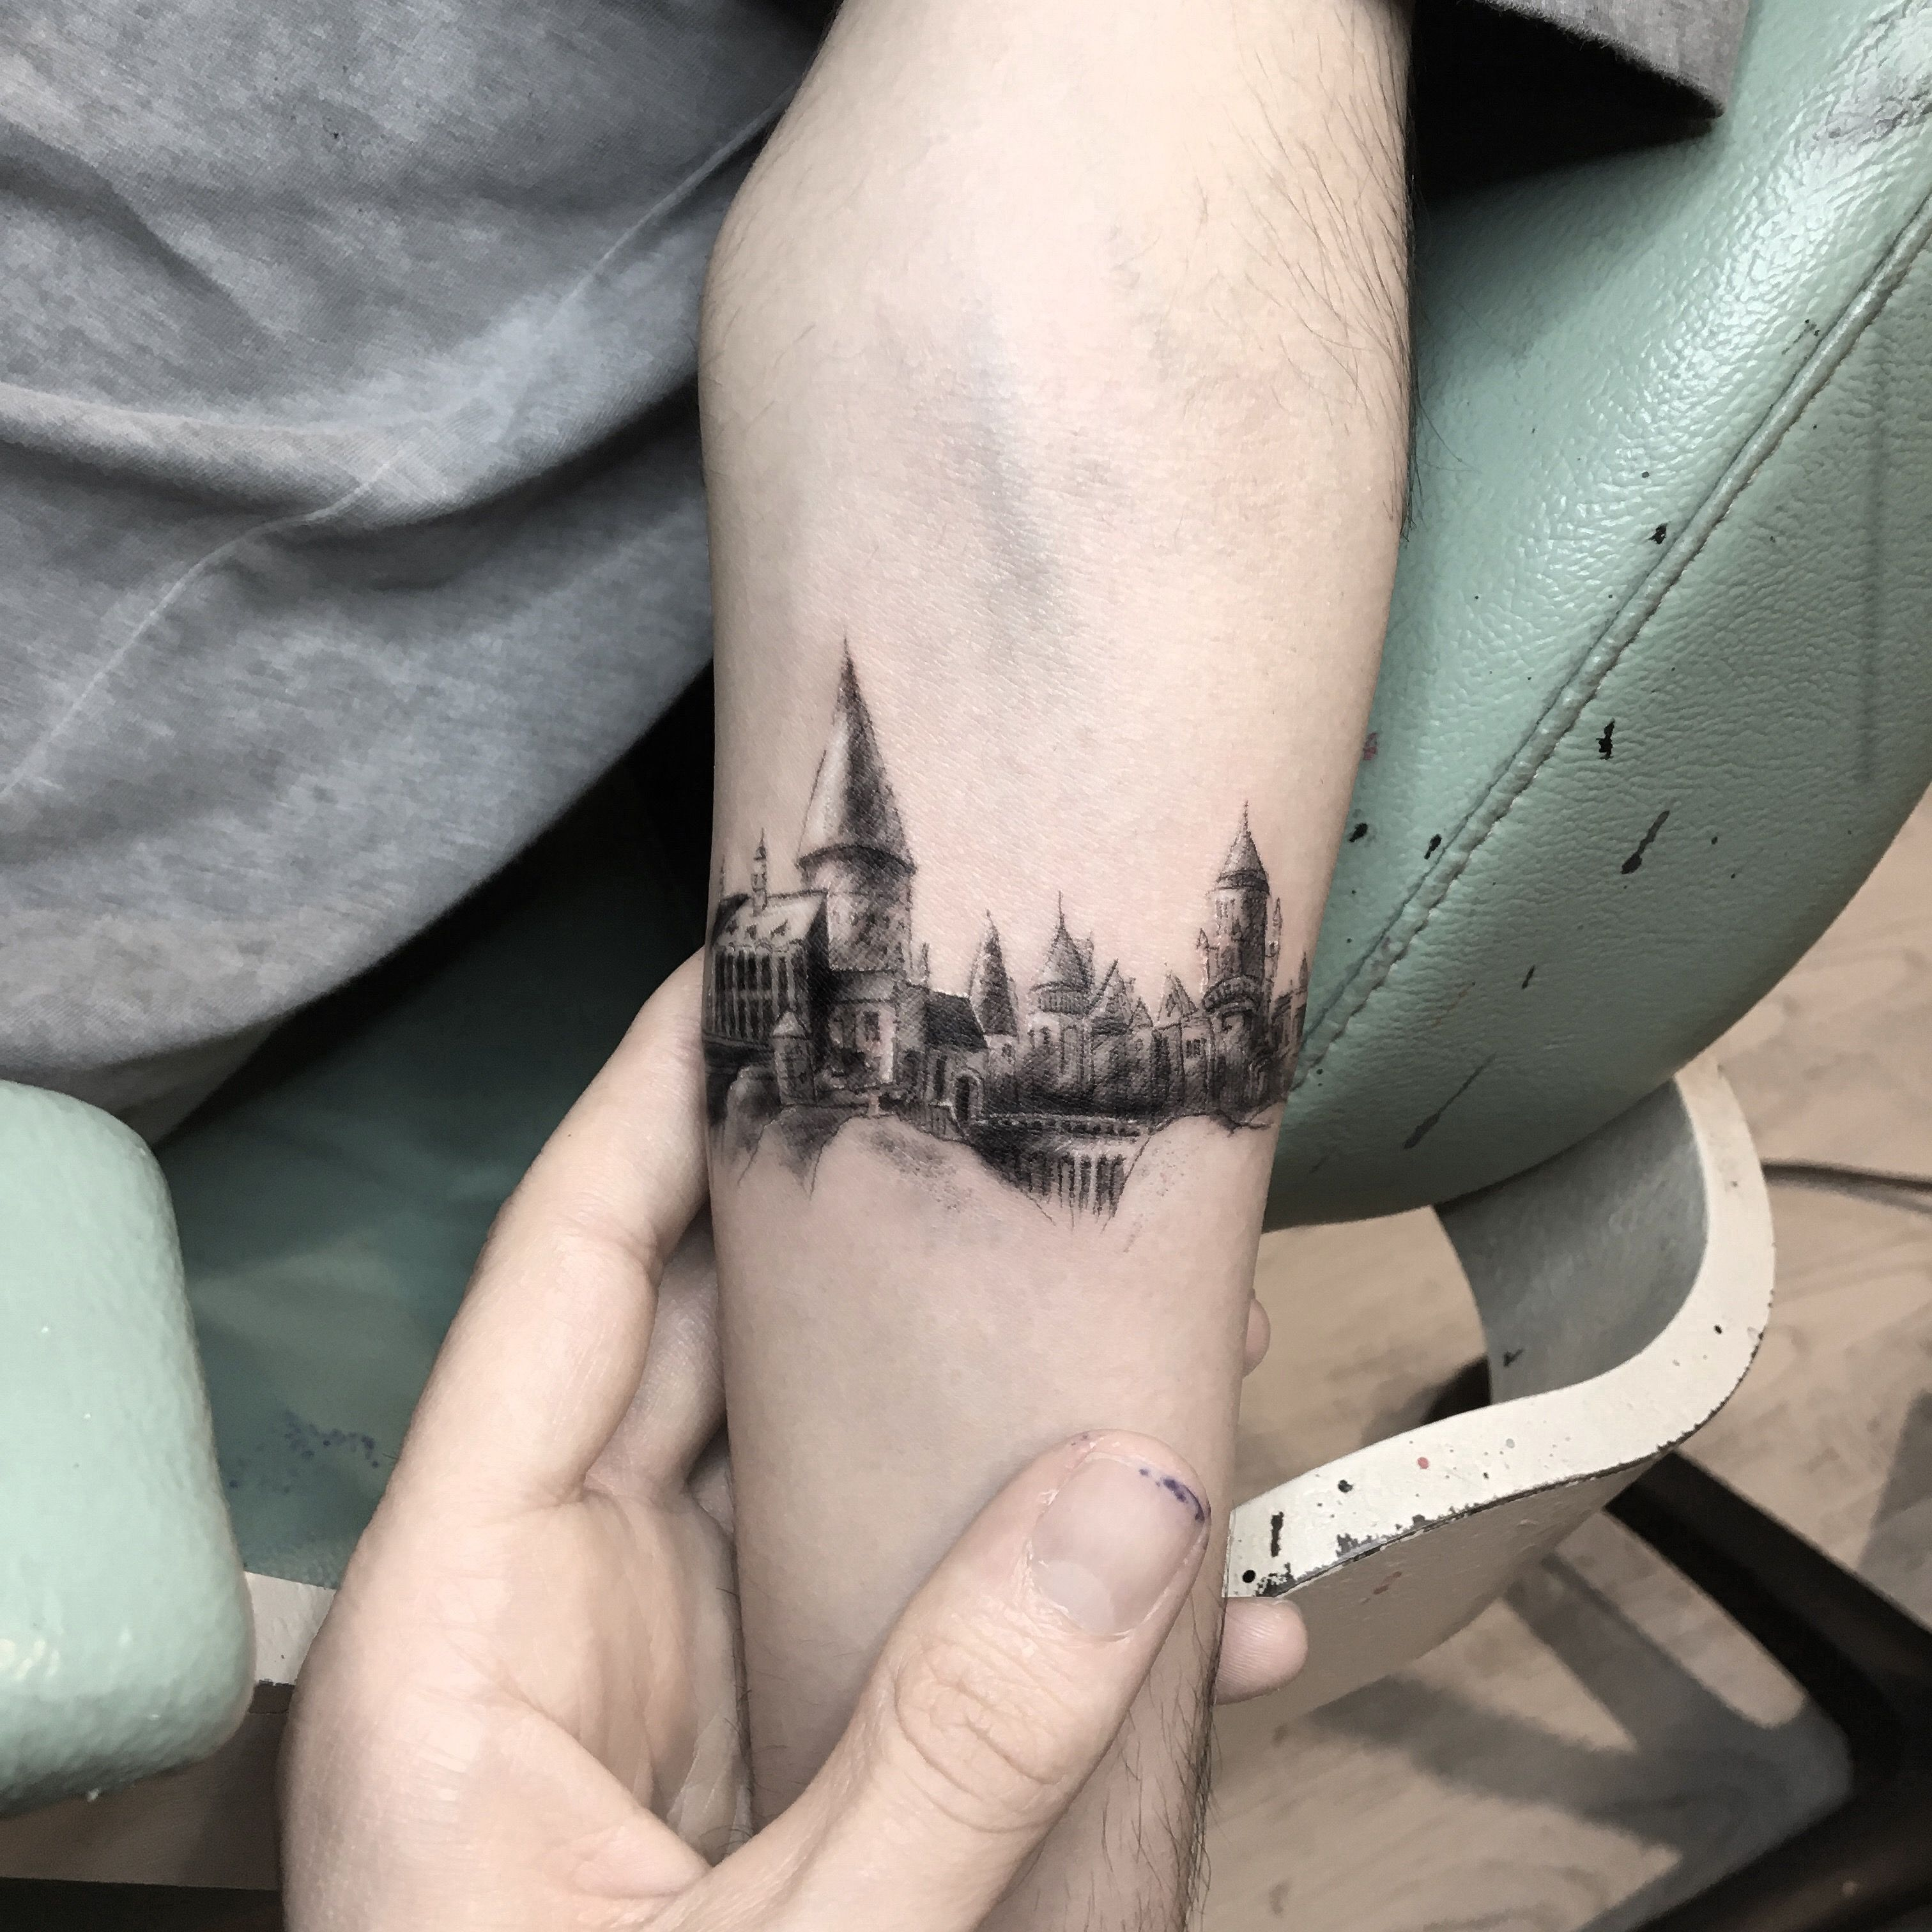 What A Great Rendering Of Hogwarts Writersrelief Com In 2020 Harry Potter Tattoos Hogwarts Tattoo Harry Potter Tattoo Sleeve